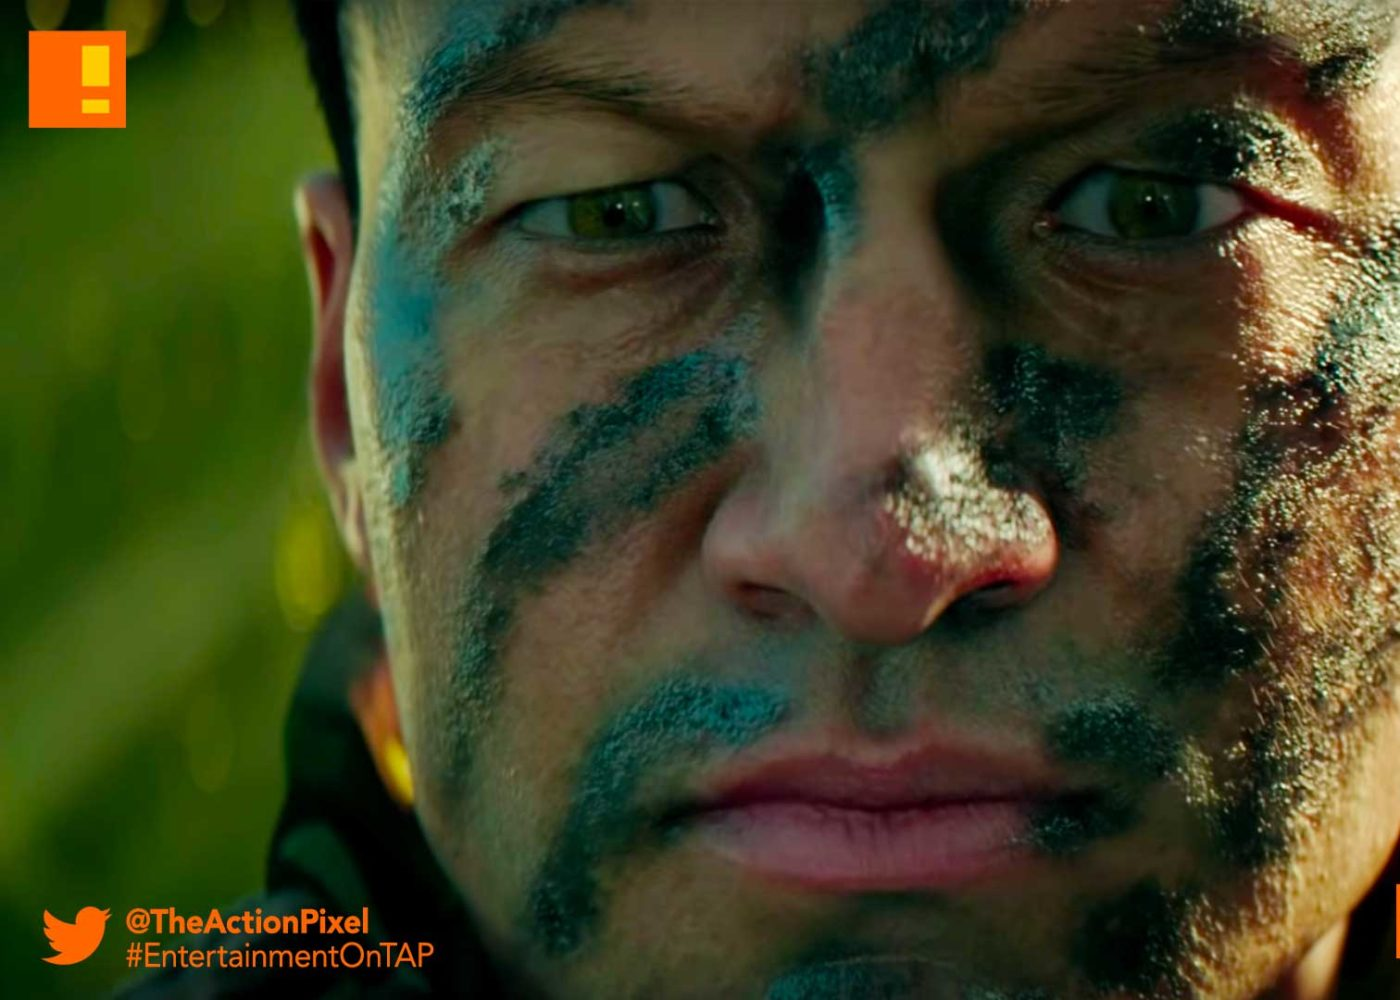 chaos story , trailer, call of duty: black ops 4, black ops 4, black ops, cod, chaos story, the action pixel, entertainment on tap, treyarch, launch trailer,